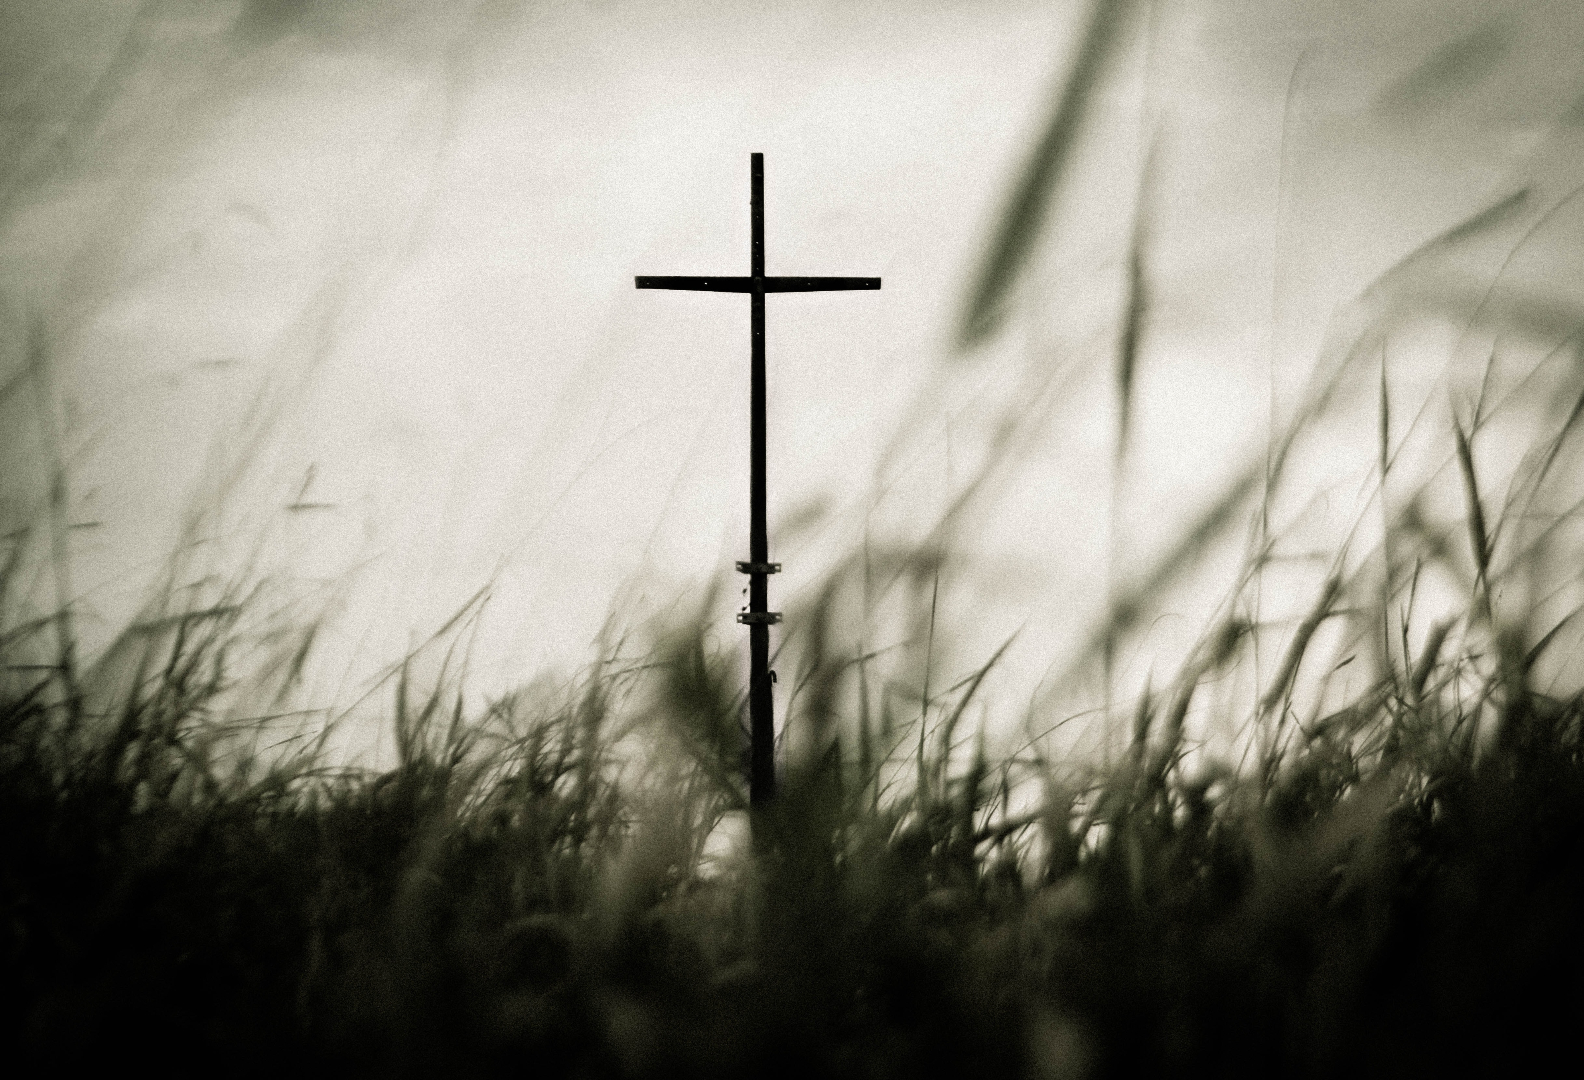 metal cross viewed from below with grass in the foreground